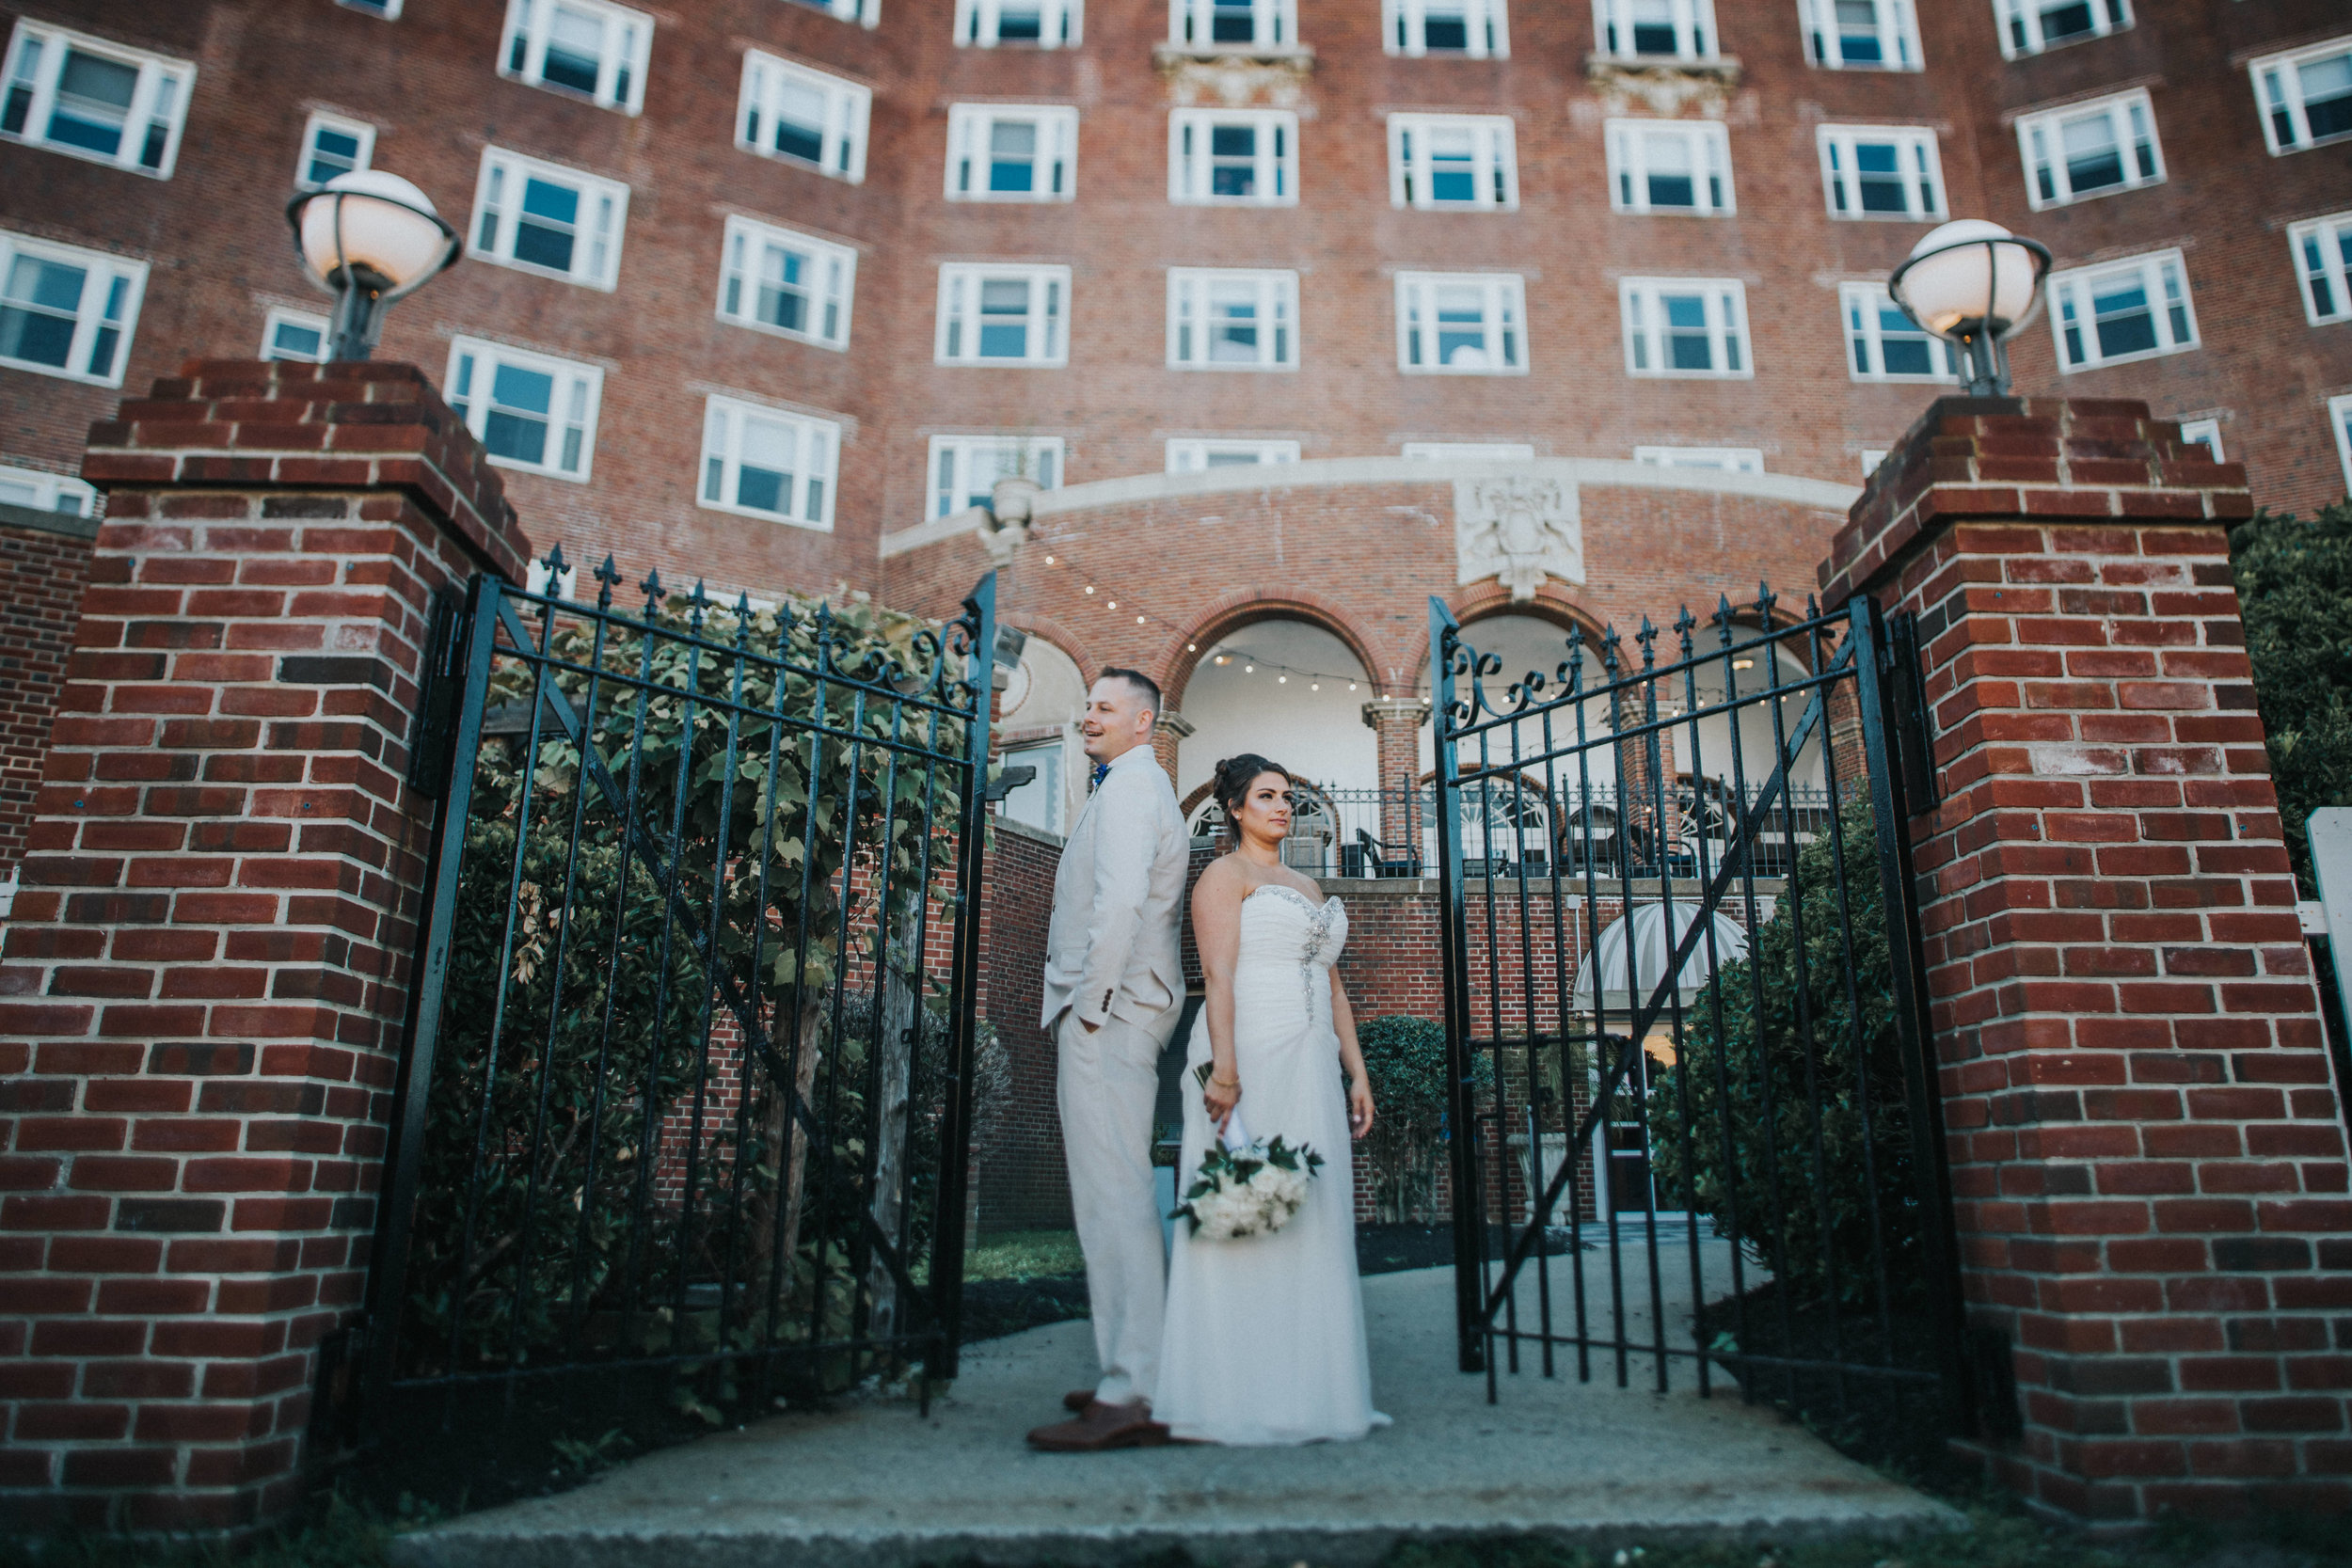 JennaLynnPhotography-NJWeddingPhotographer-Wedding-TheBerkeley-AsburyPark-Allison&Michael-Bride&Groom-43.jpg